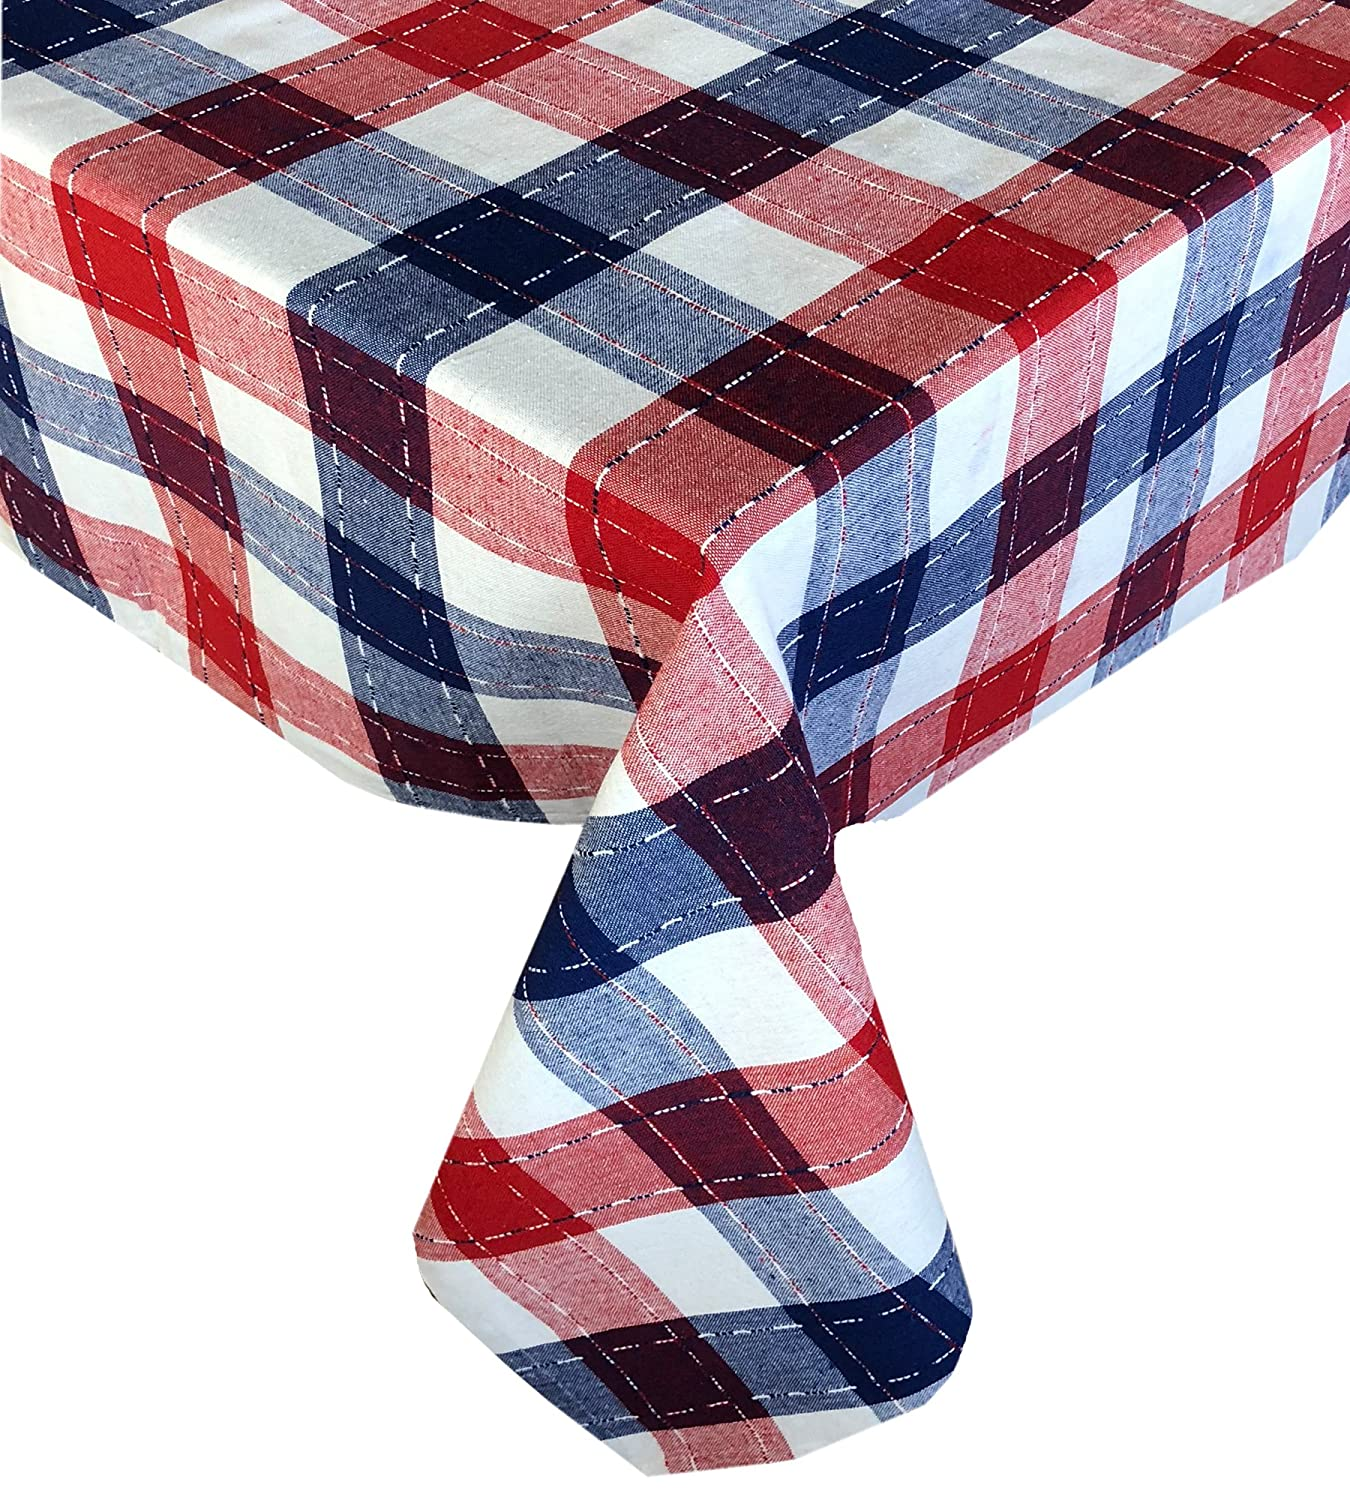 White and Blue Heavy Weight Placemats by Lintex Lintex Americana Patriotic Plaid Cotton Weave Fabric Place Mat Set Festive Red Set of 4 Place Mats